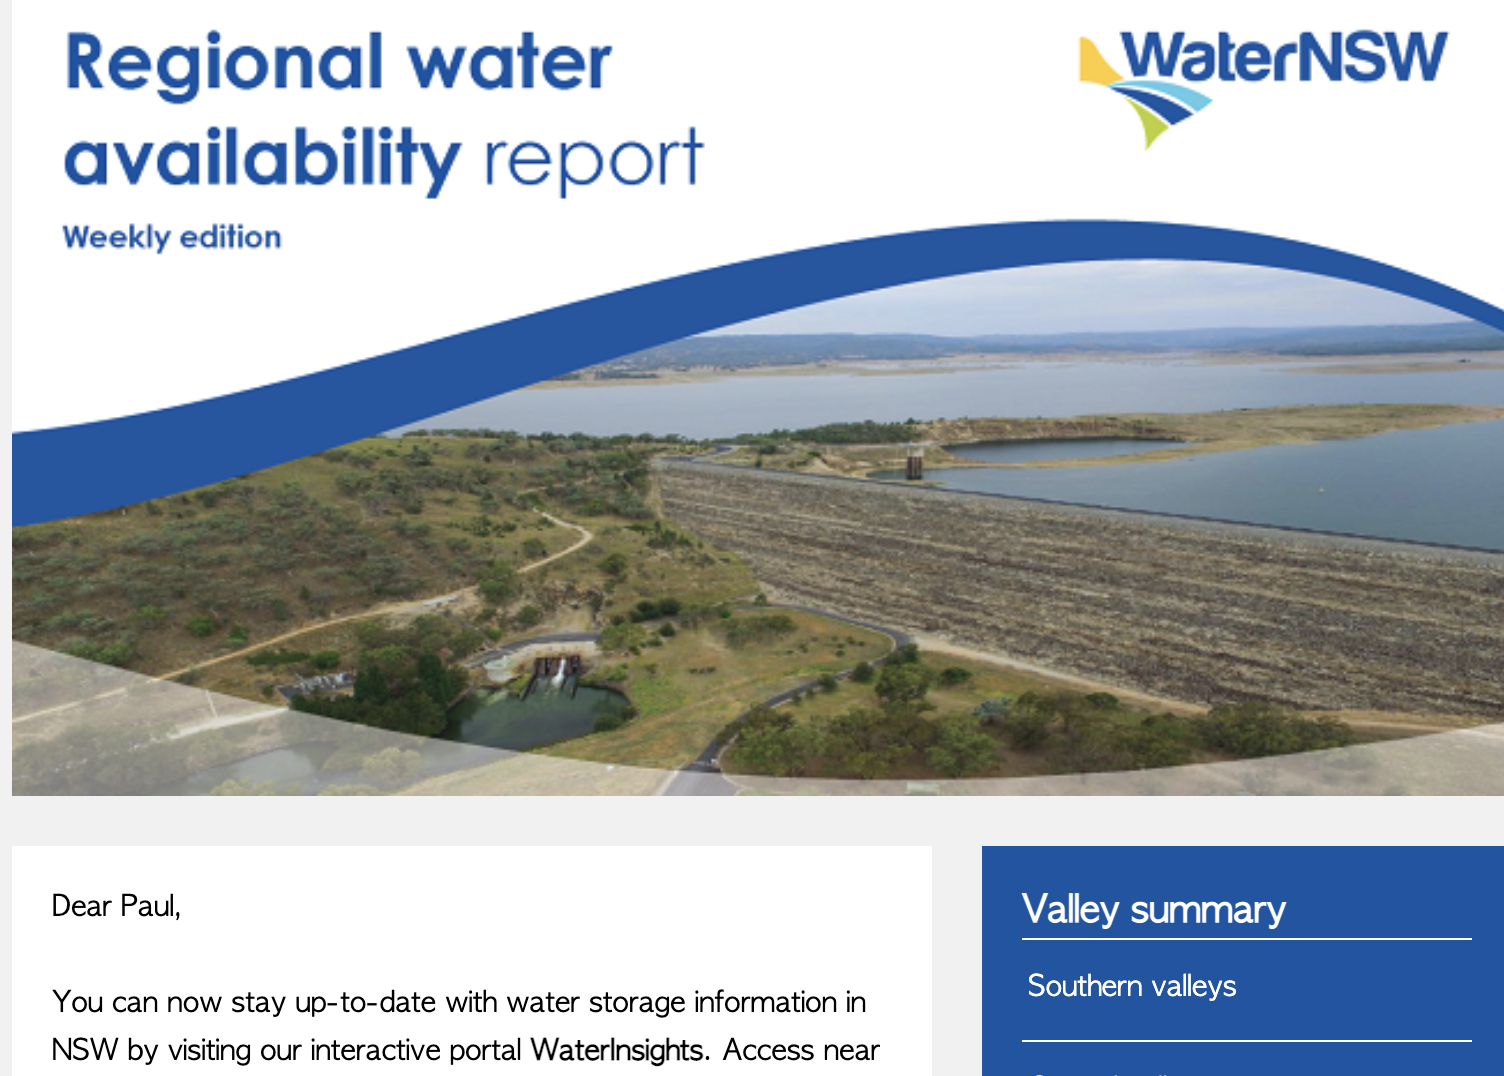 Water NSW